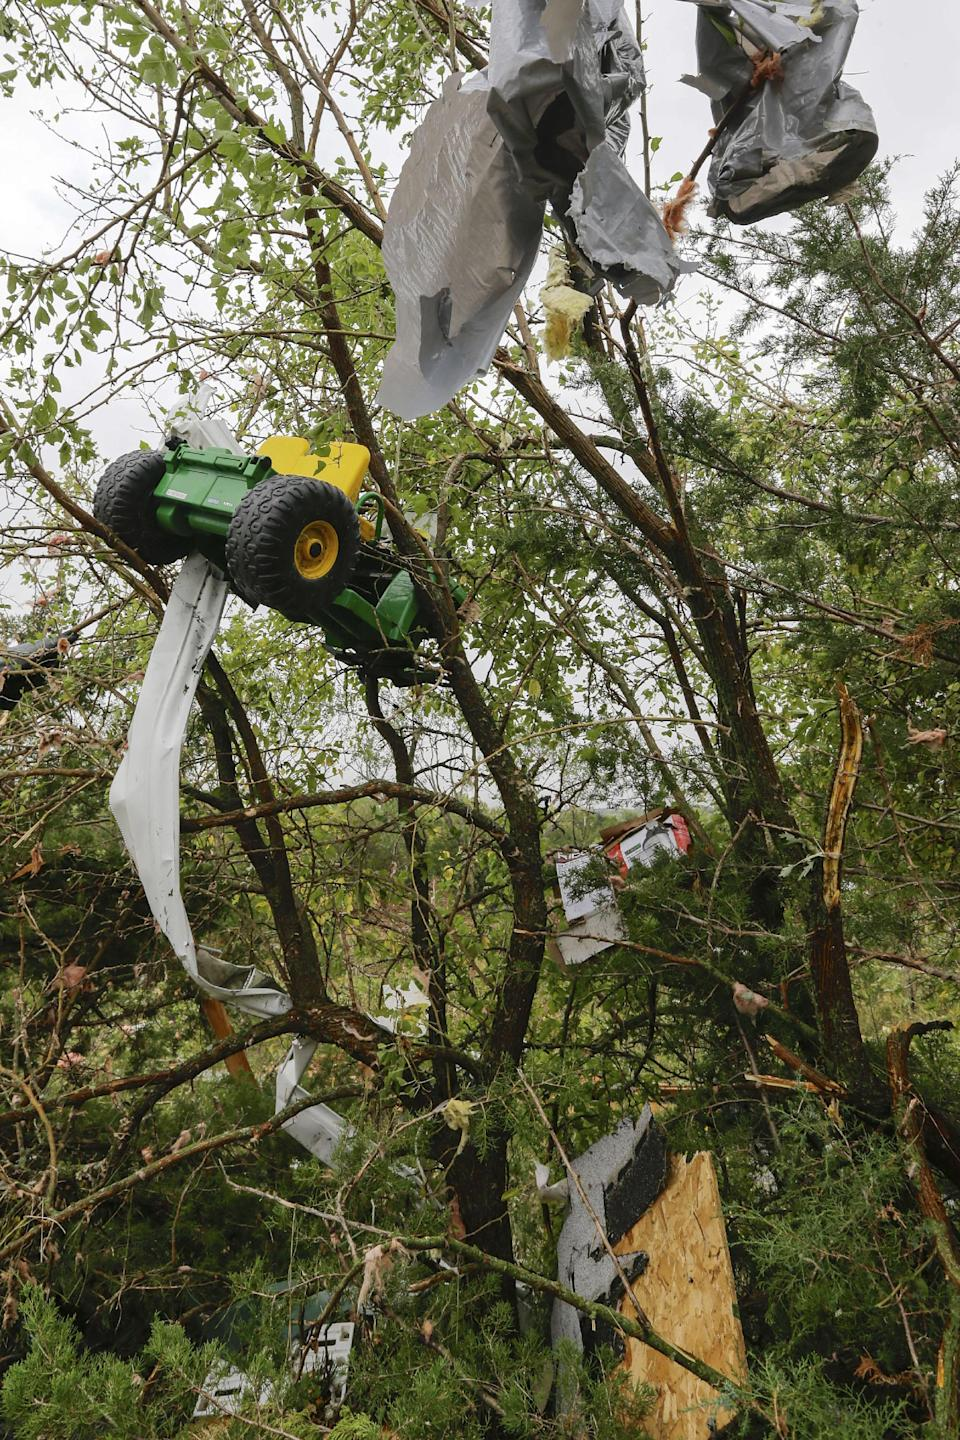 Debris, including a toy tractor, are trapped in a tree following a tornado in Hickman, Neb., Friday, Oct. 4, 2013. Powerful storms crawled into the Midwest on Friday, dumping heavy snow in South Dakota, spawning a tornado in Nebraska and threatening dangerous thunderstorms from Oklahoma to Wisconsin. (AP Photo/Nati Harnik)